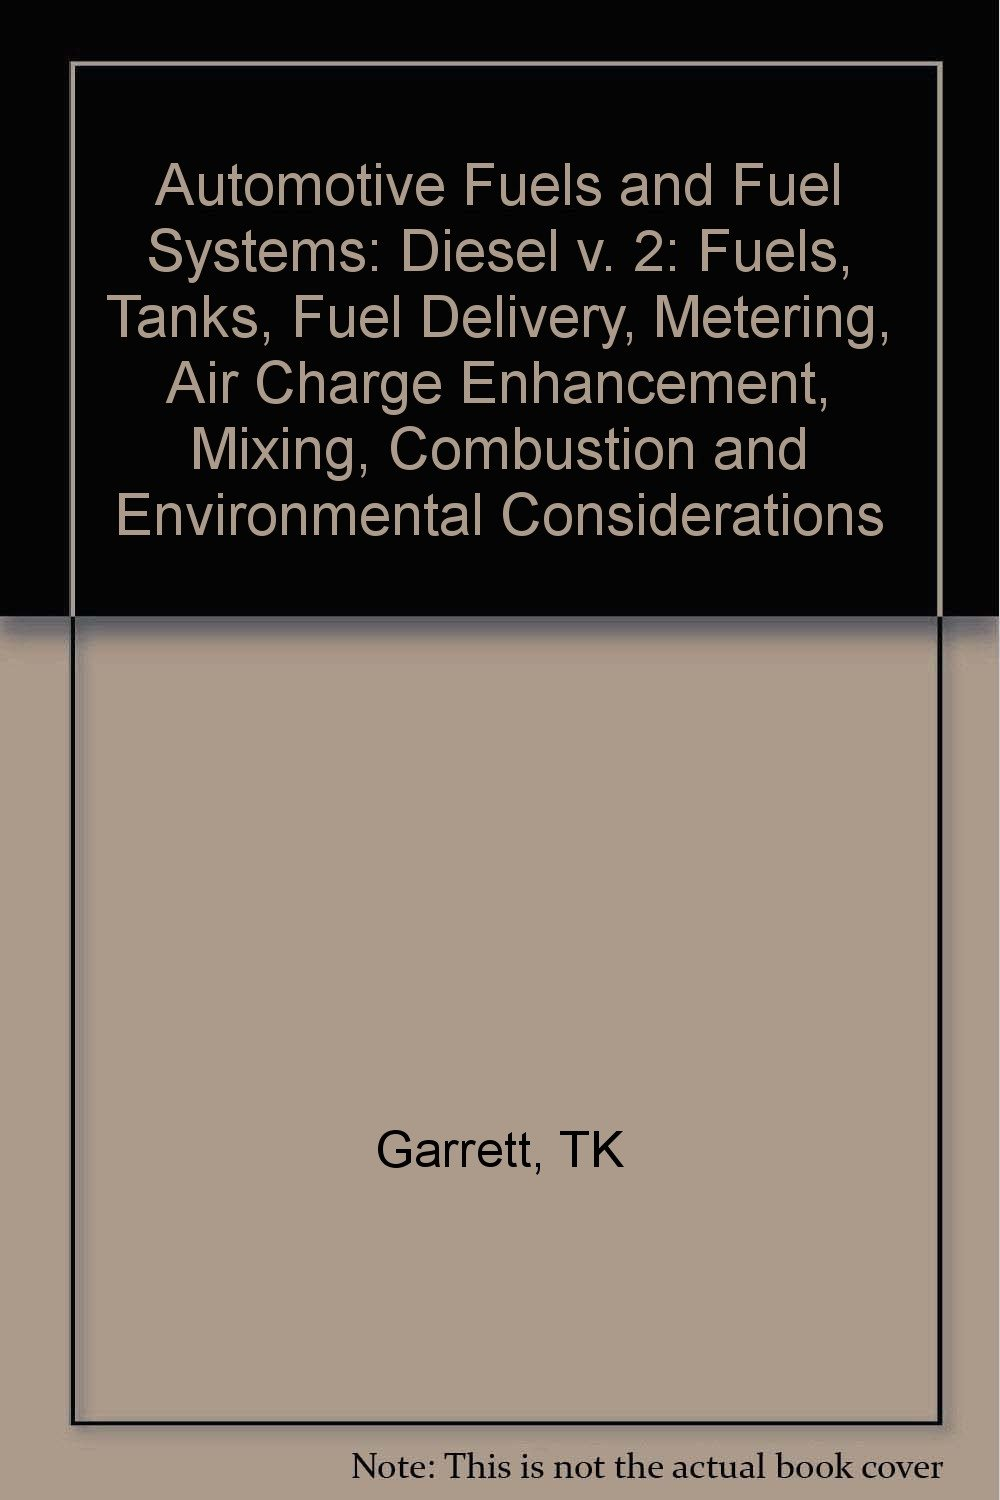 Automotive Fuels and Fuel Systems: Diesel v. 2: Fuels, Tanks, Fuel Delivery, Metering, Air Charge Enhancement, Mixing, Combustion and Environmental Considerations